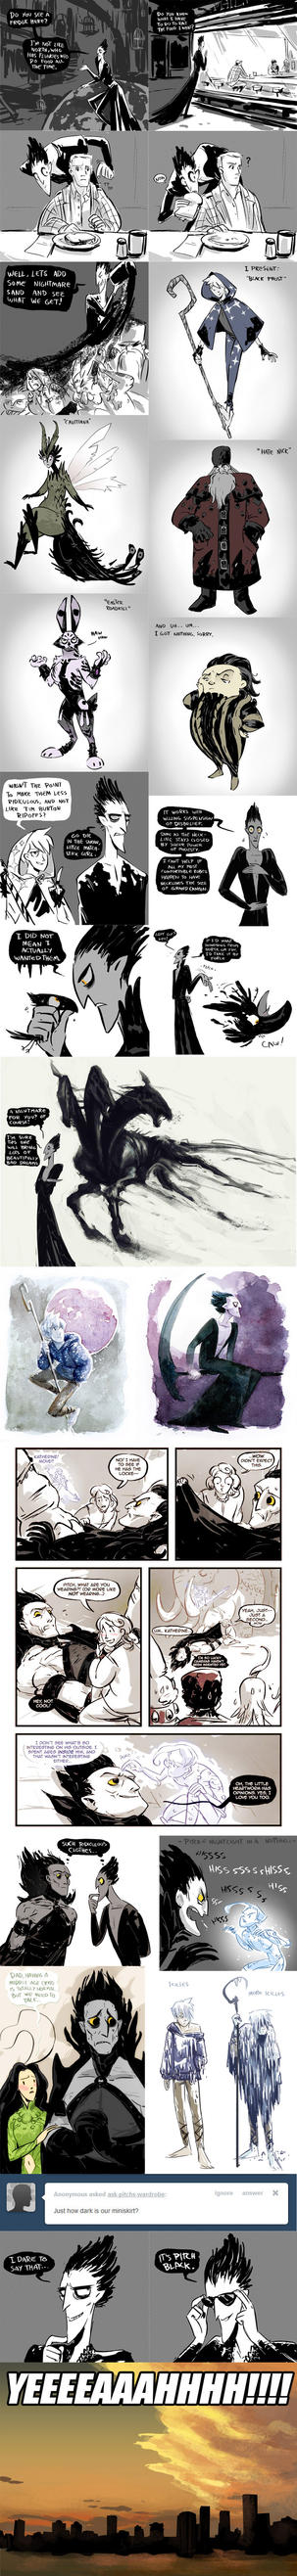 RotG Sketchdump IV by NightmareHound